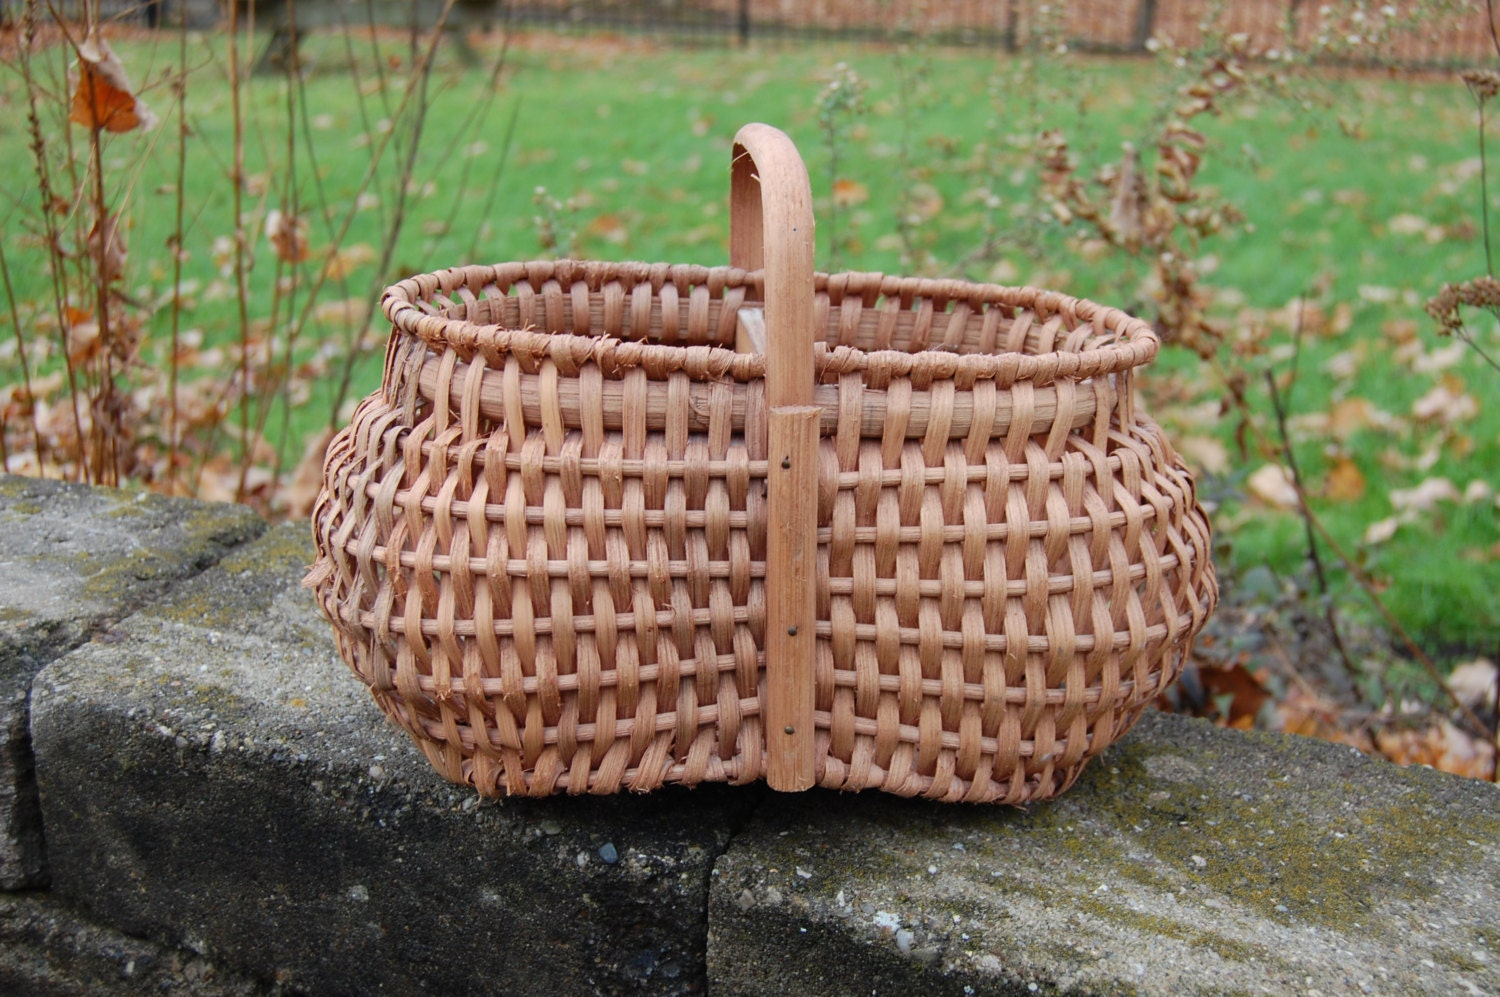 Handmade Baskets From Ohio : Berry basket handwoven handle euc amish made ohio kelly s